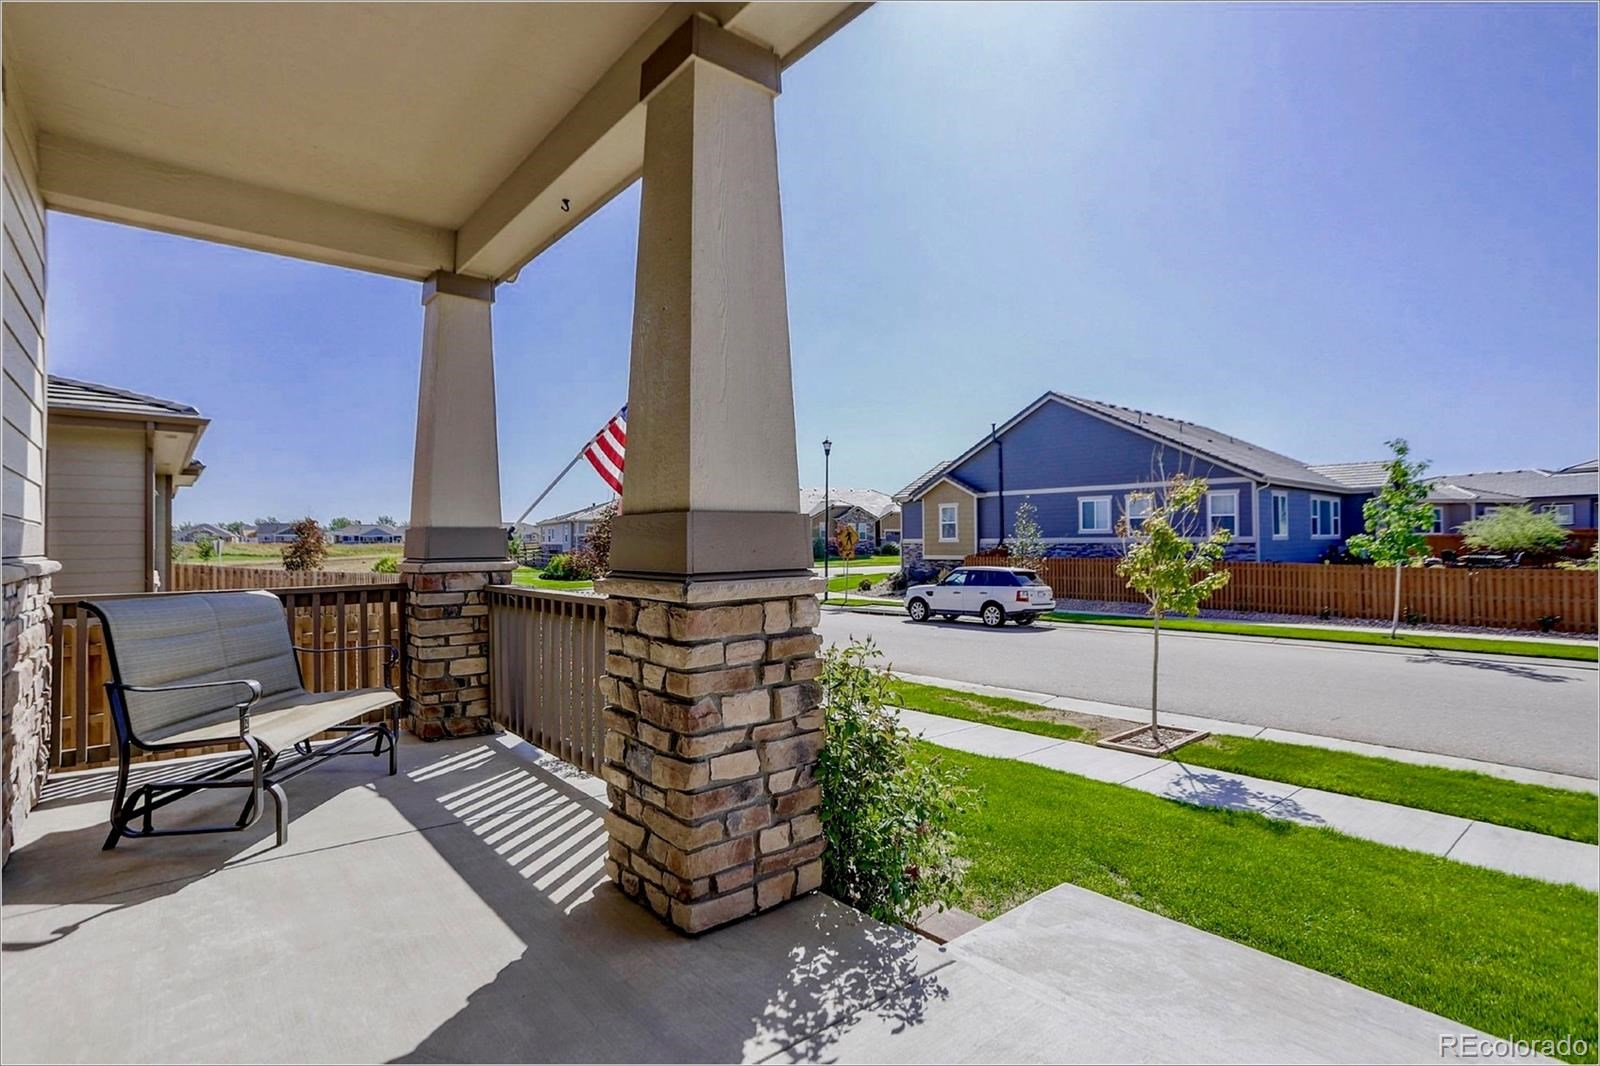 MLS# 9093556 - 4 - 15585 E 115th Avenue, Commerce City, CO 80022